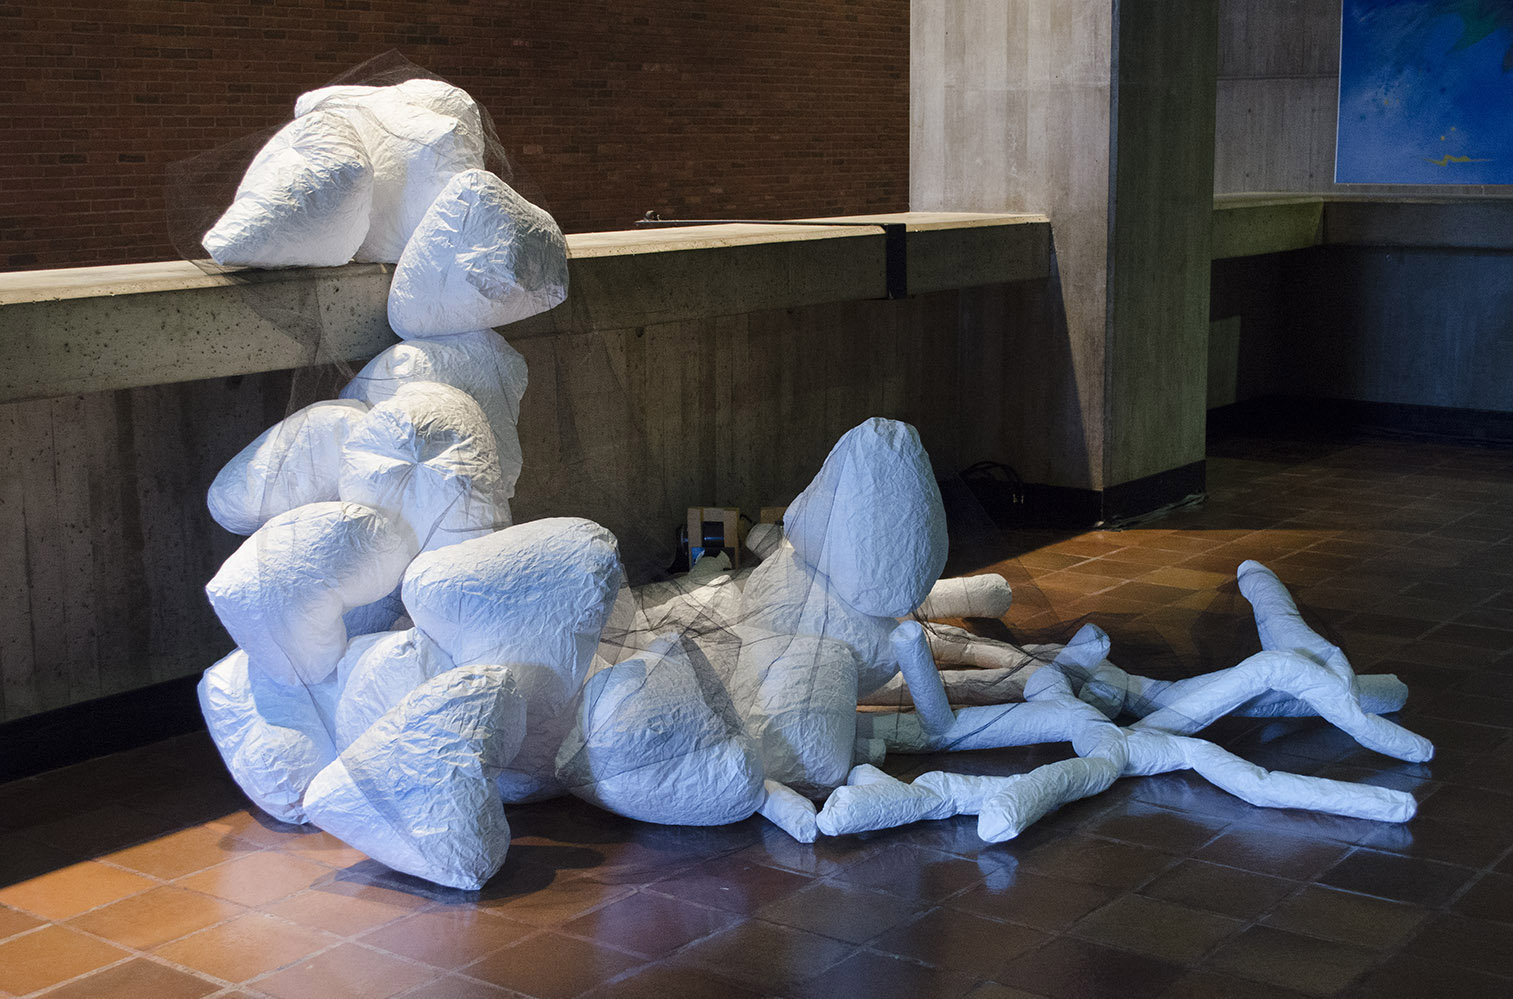 Tenders installed at City Hall, Boston, MA, 2017, Inflated Tyvek